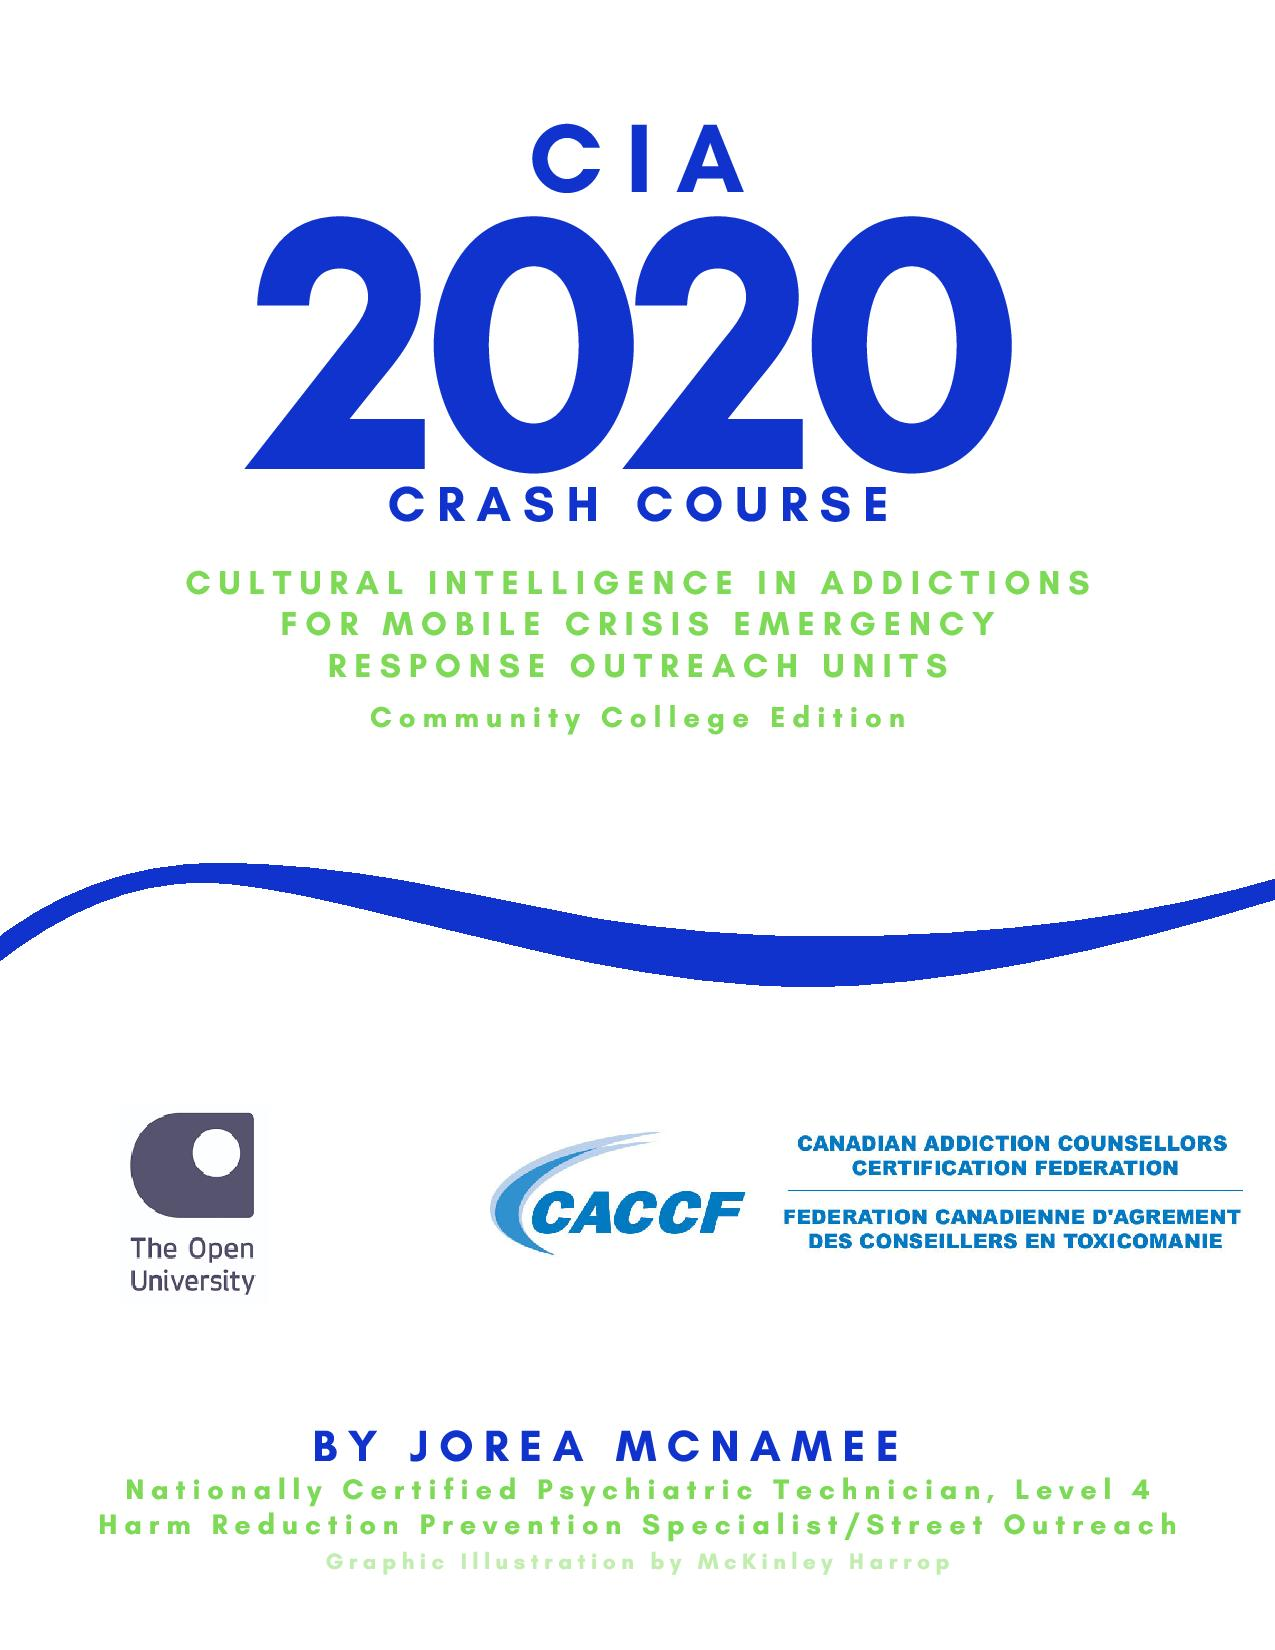 Cultural Intelligence in Addictions Boot Camp 2020: Case Aide Training - CAACF Accredited